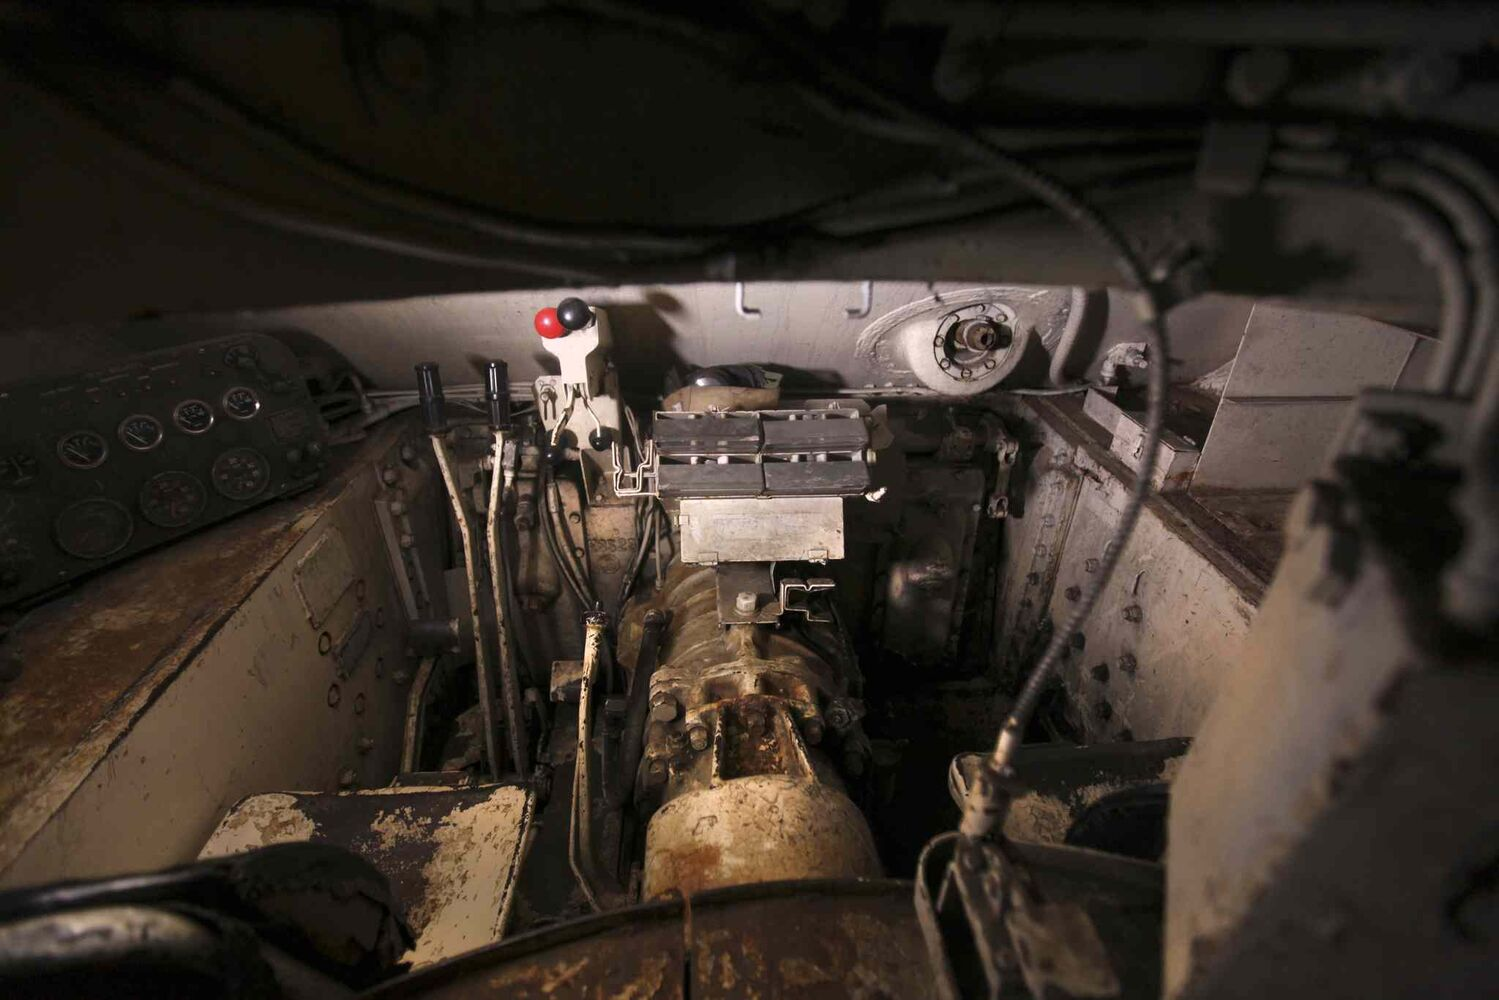 Inside the Sherman tank.